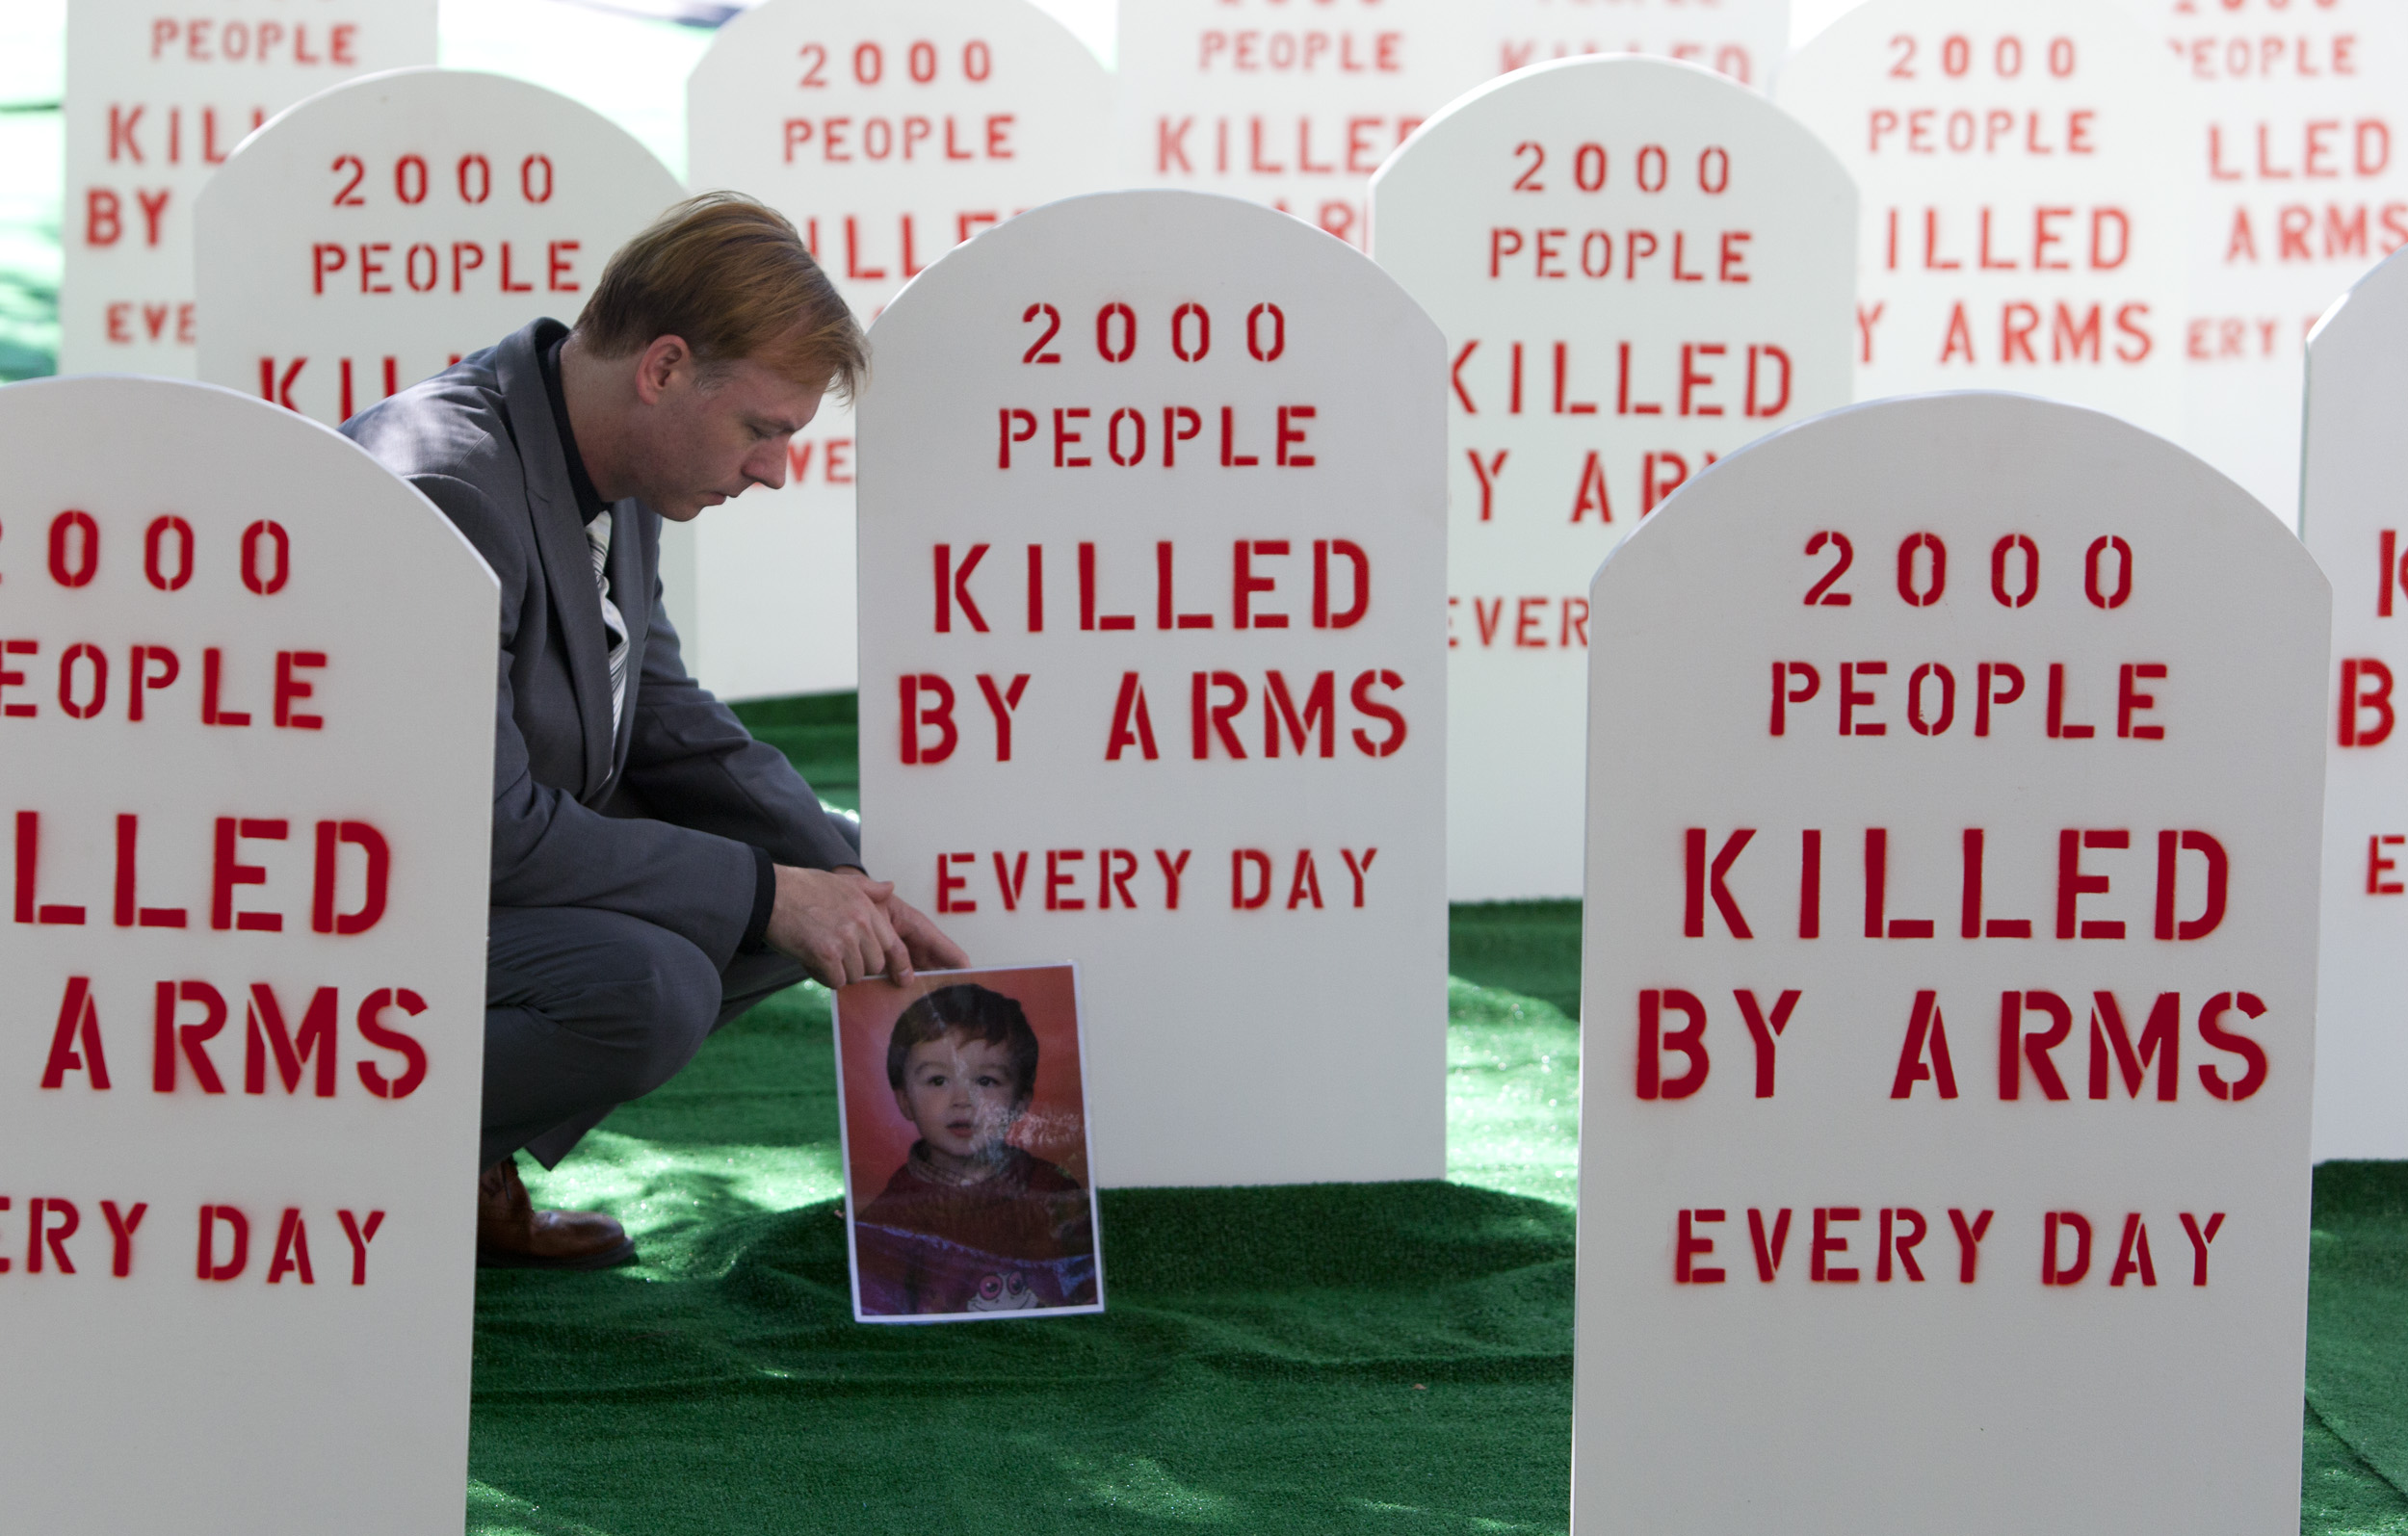 Control Arms campaigner David Grimason lays a photo of his son Alistair, who was killed by stray bullets in a gun fight, at the base of a mock tombstone. Control Arms coalition set up a mock graveyard next to the United Nations building in New York July 25, 2012. They are demonstrating as the negotiations for an Arms Trade Treaty comes to a close on Friday.  Control Arms/ Andrew Kelly